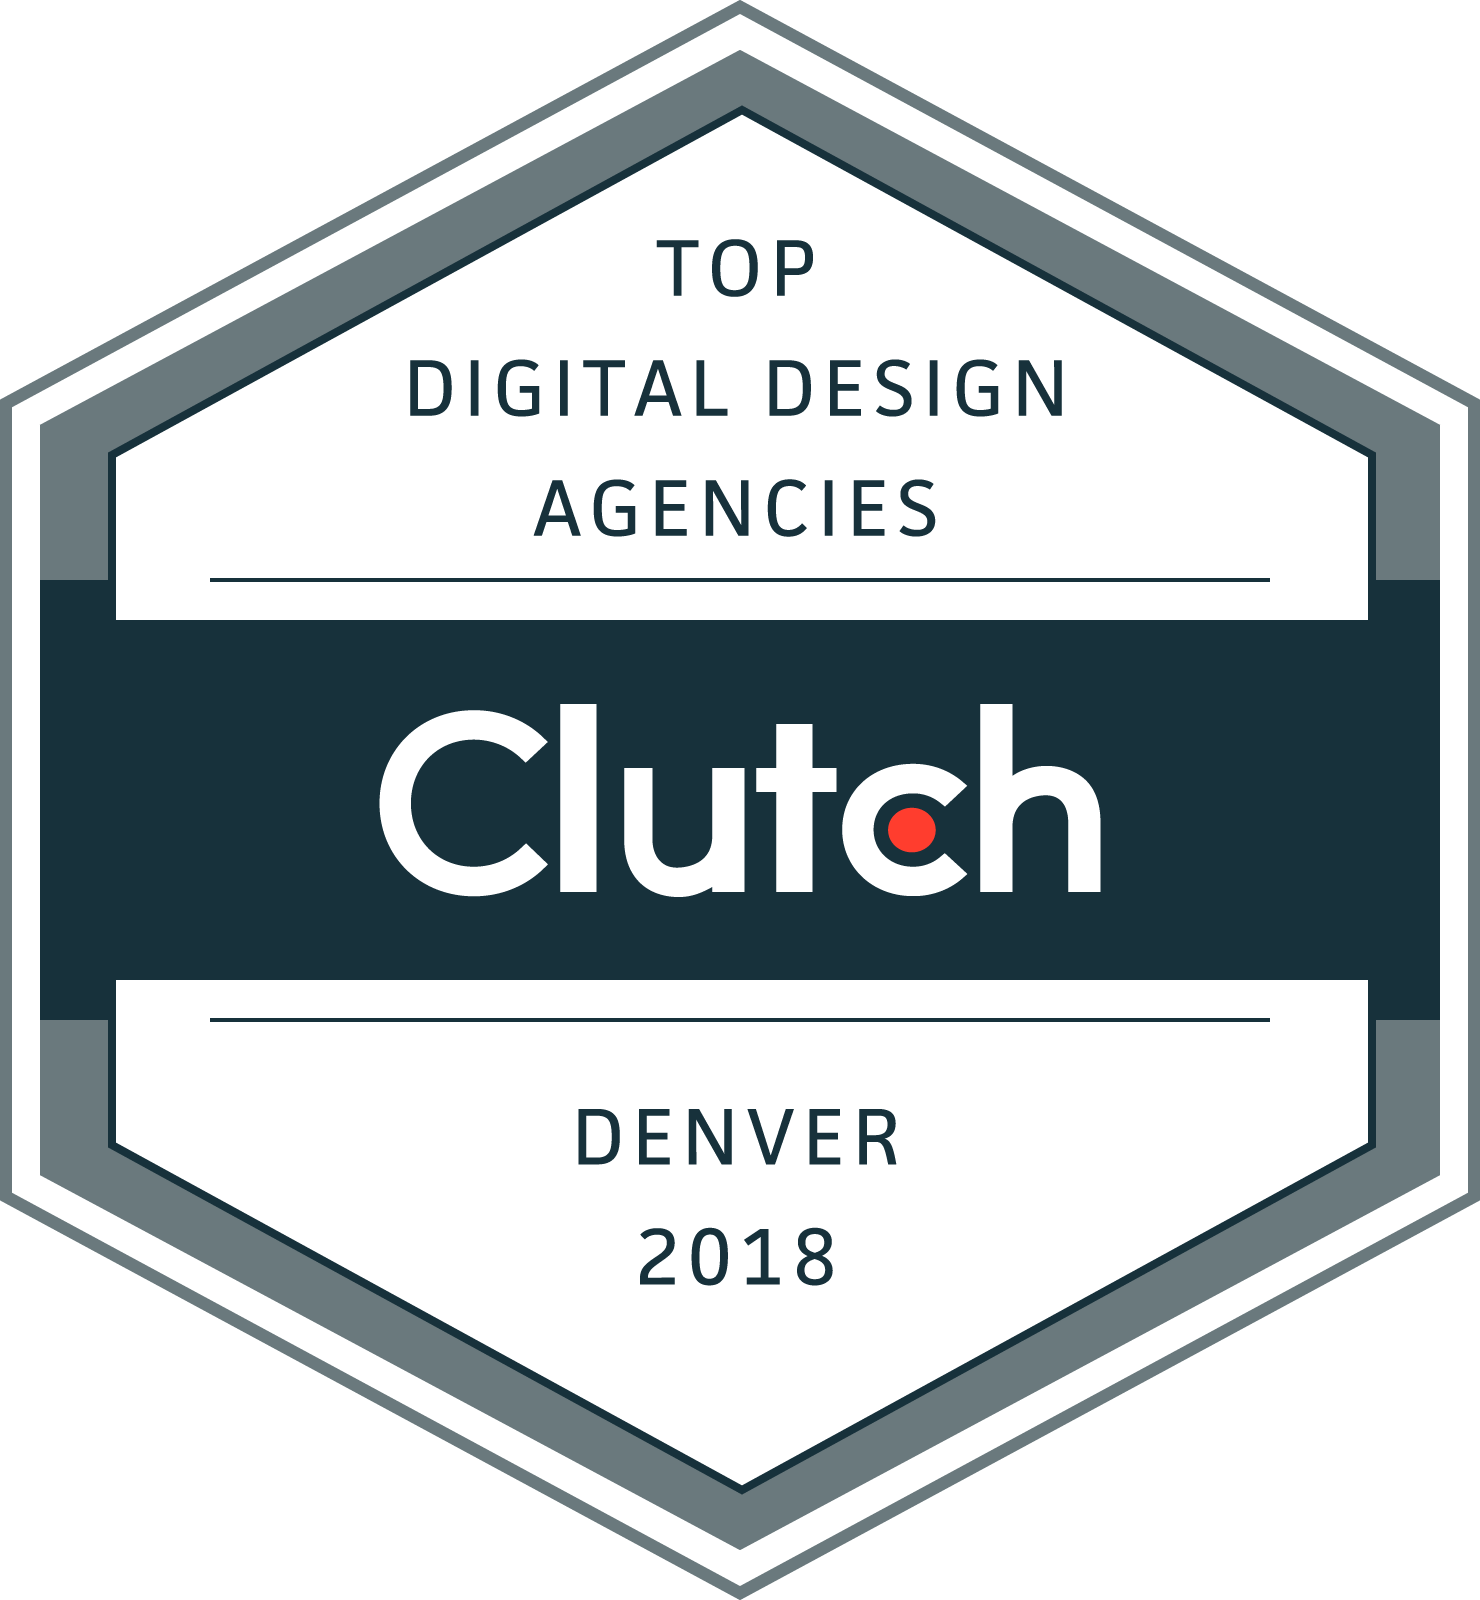 Clutch Top Digital Design Agencies 2018 Award